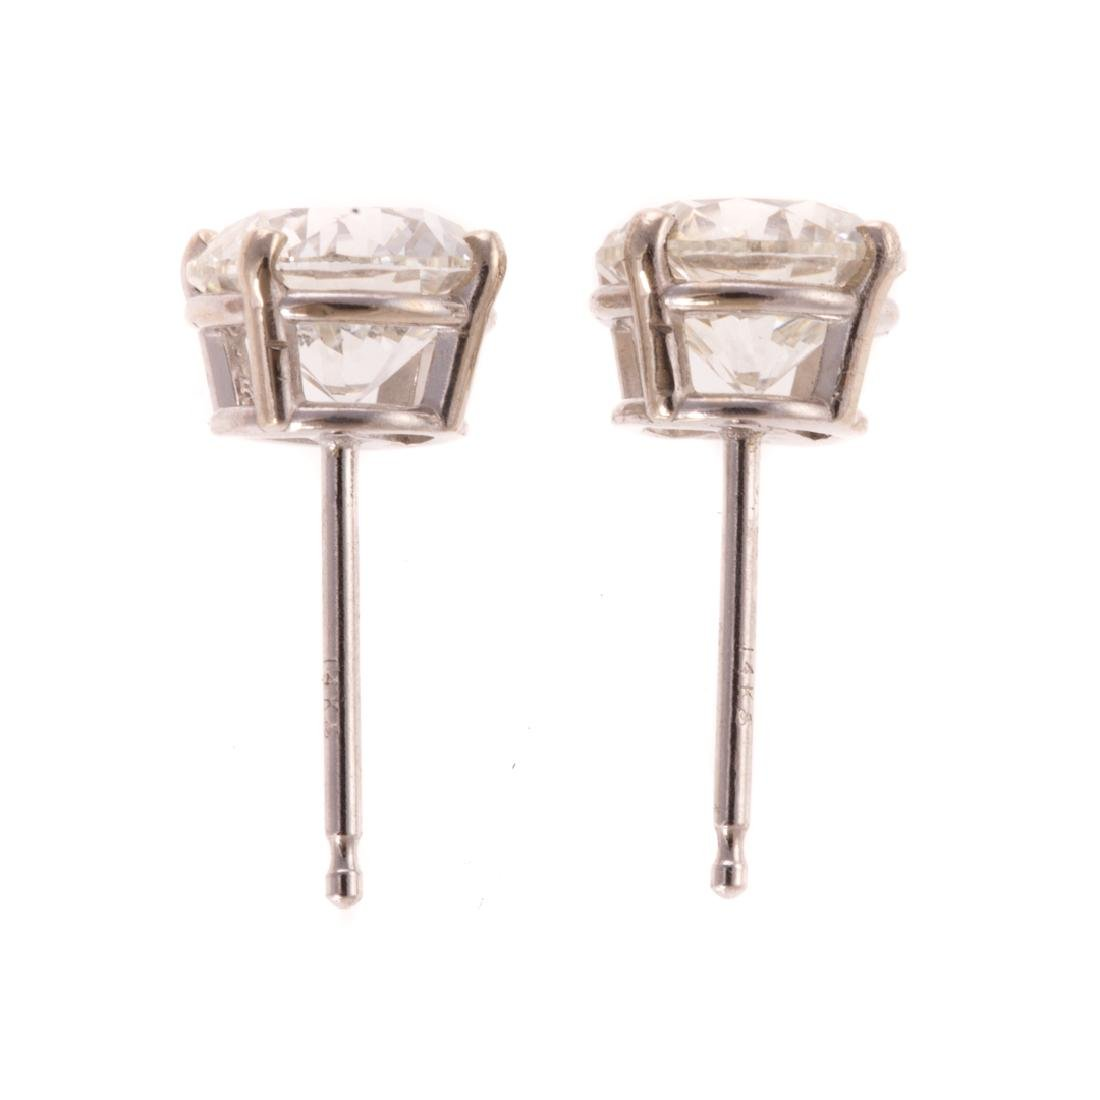 A Pair of 2.01 tcw Diamond Studs in 14K White Gold - 2